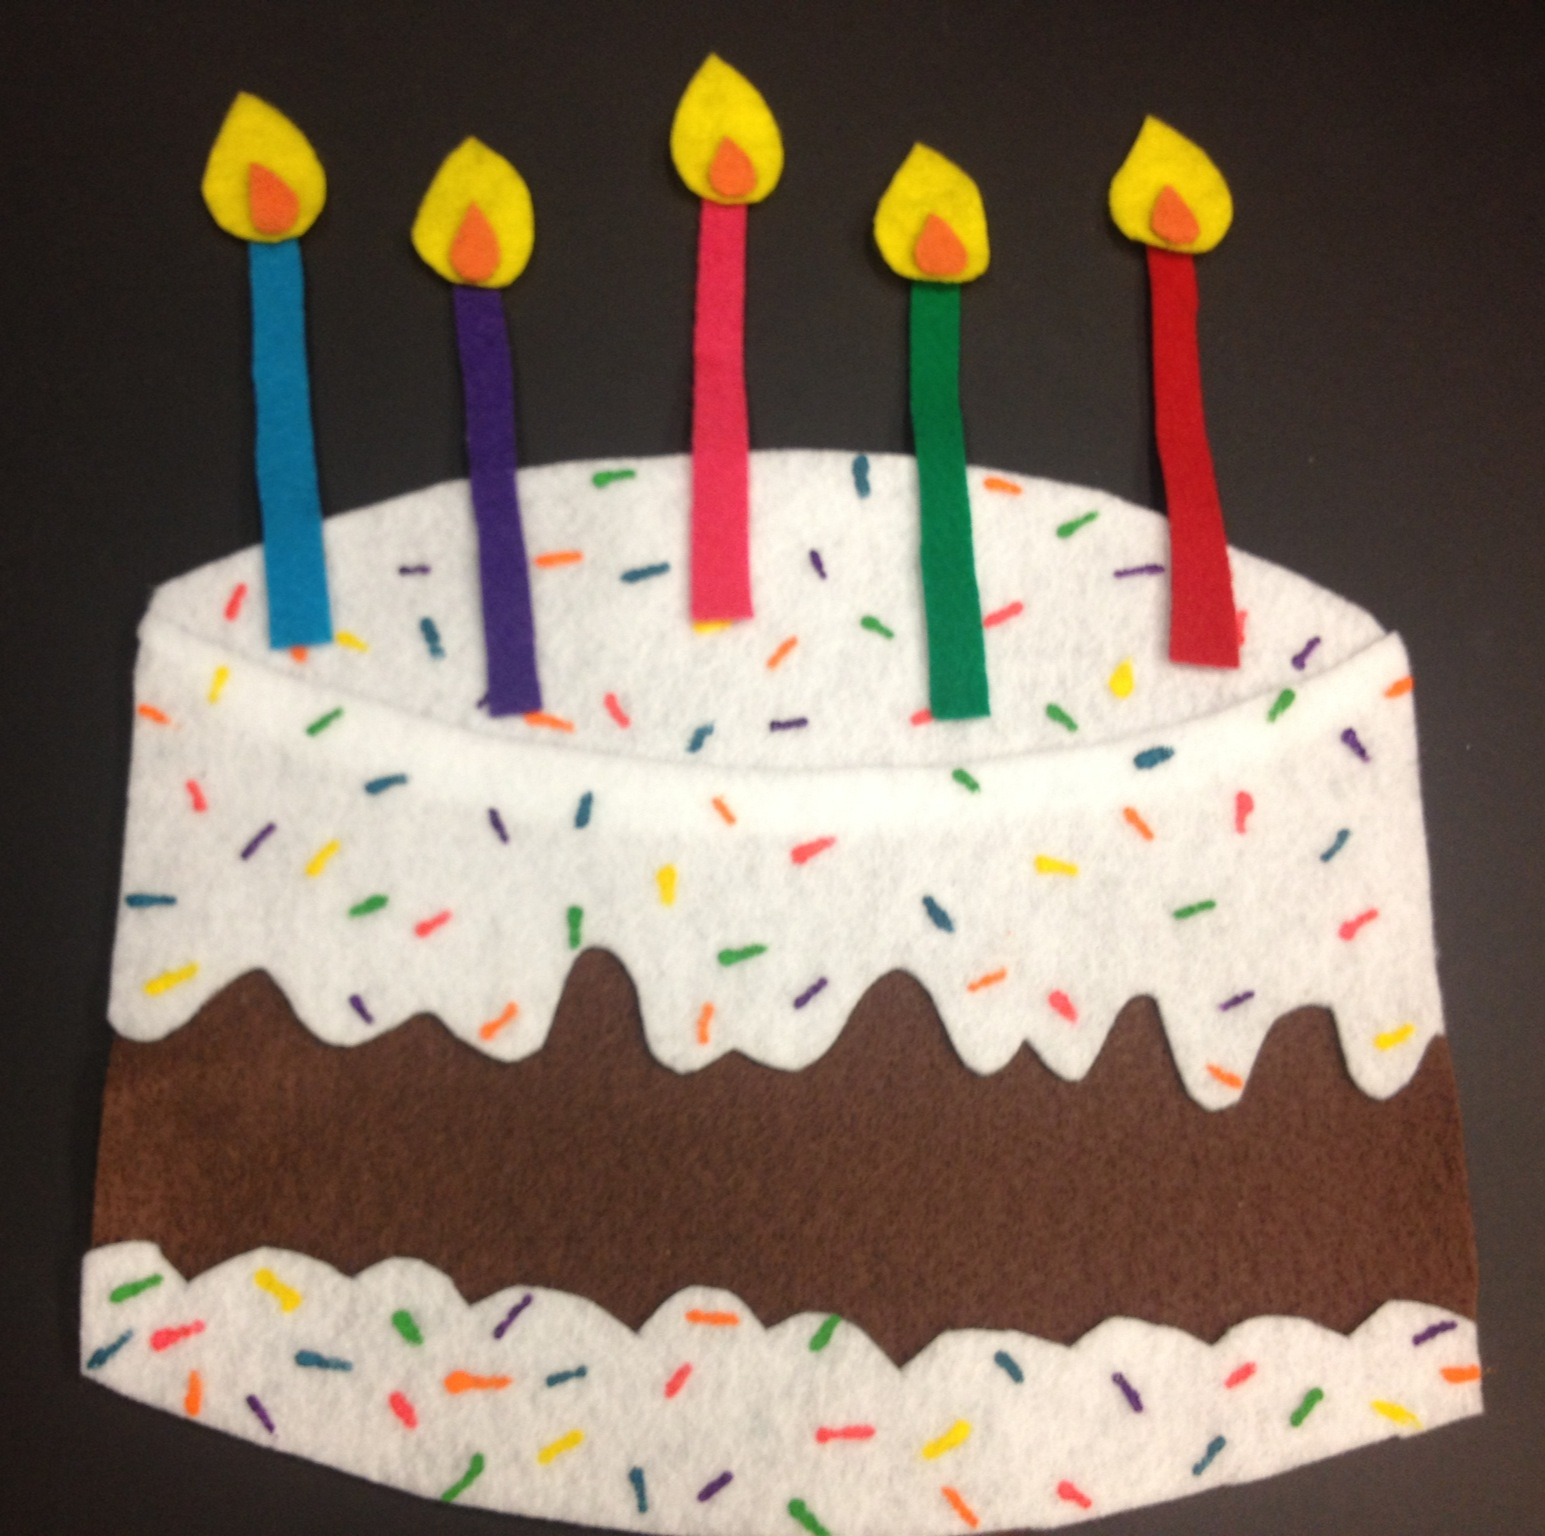 Birthday Cake Craft For Preschoolers